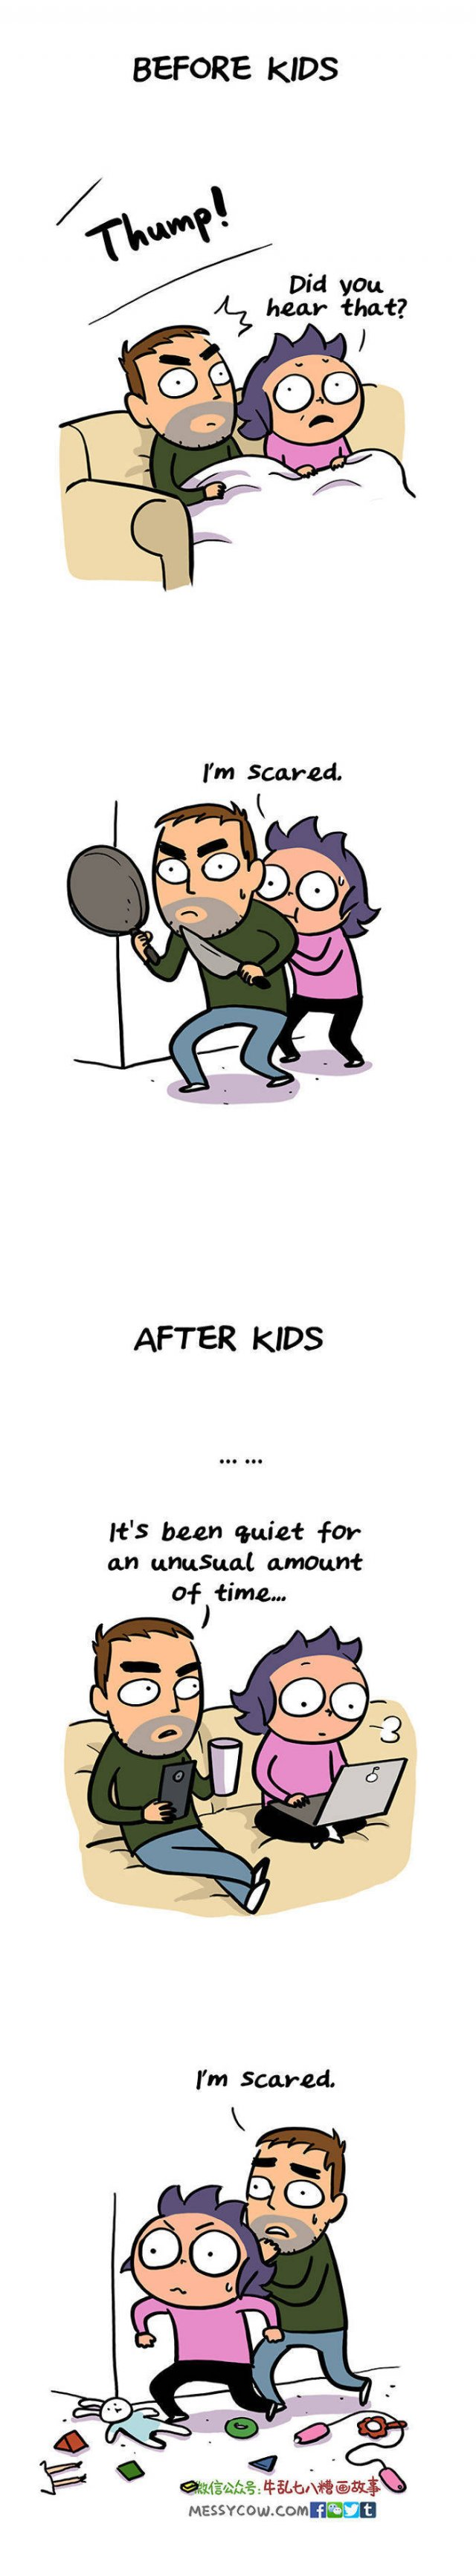 True And Funny Comics About Parenting (30 pics)